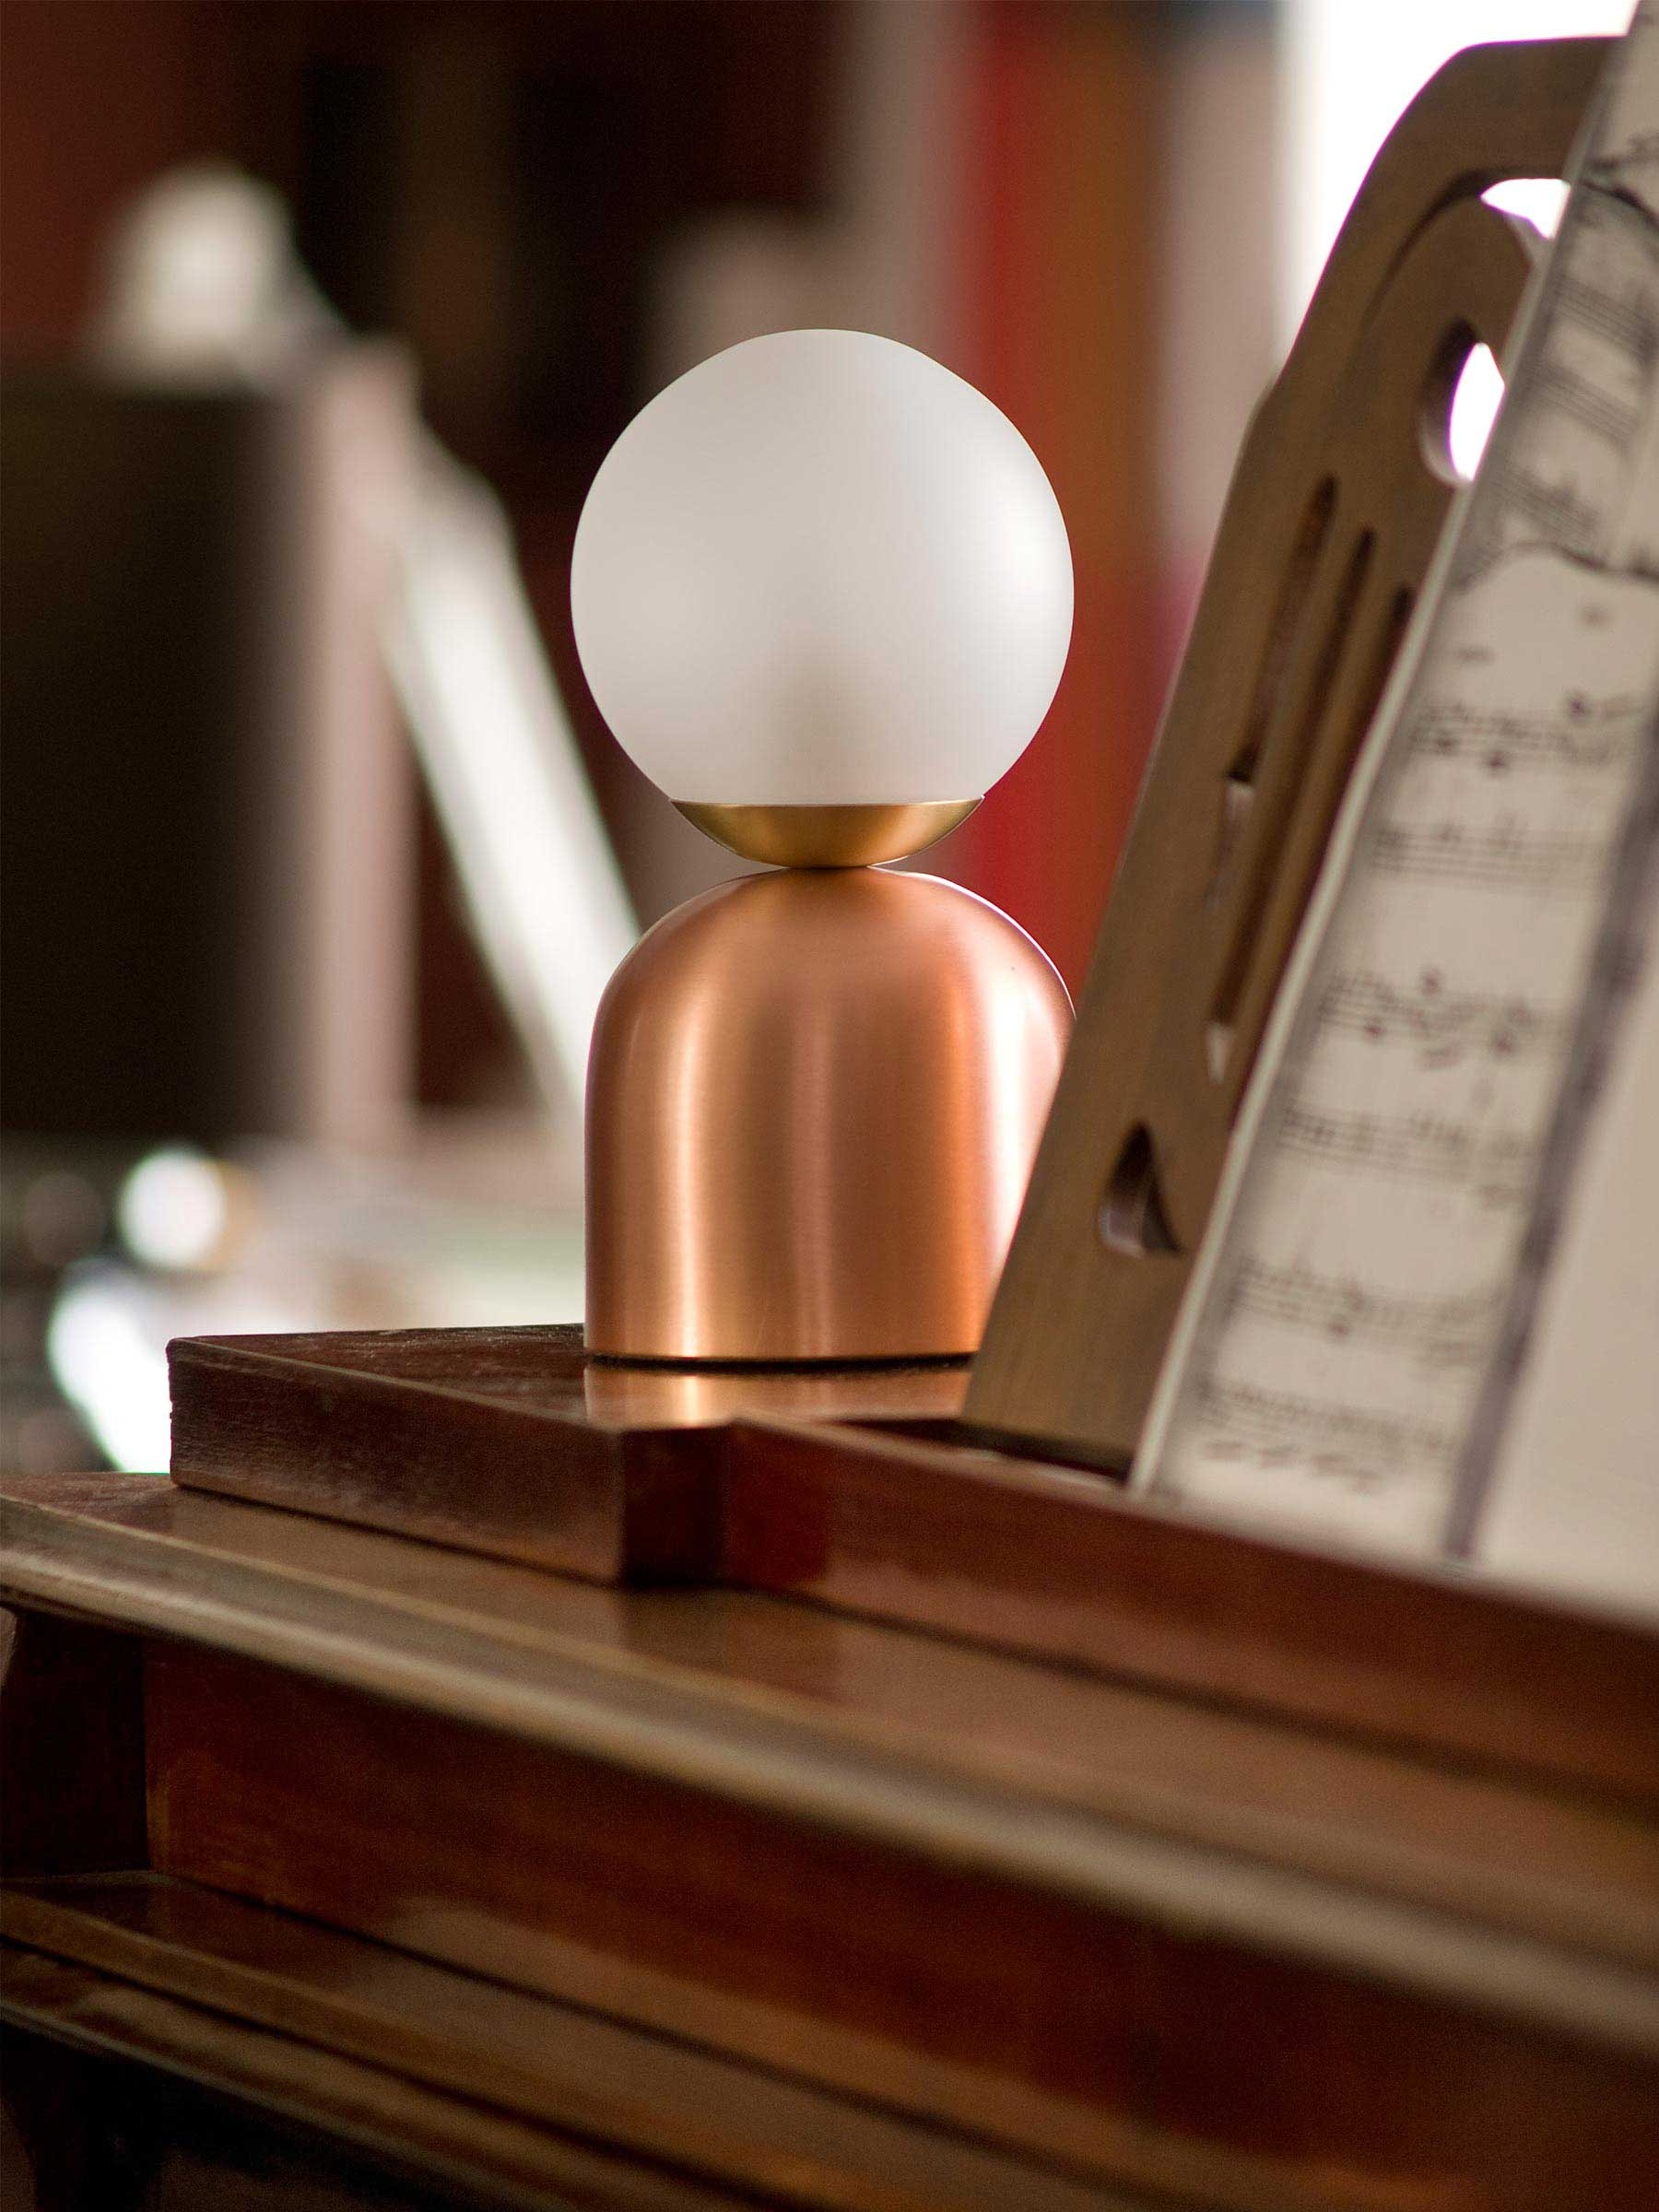 BONBON COPPER LIGHT Lovely petite Bonbon Table Lamp in copper material emanates a soft glow from a carefully spun metal structure and hand-blown glass diffuser.